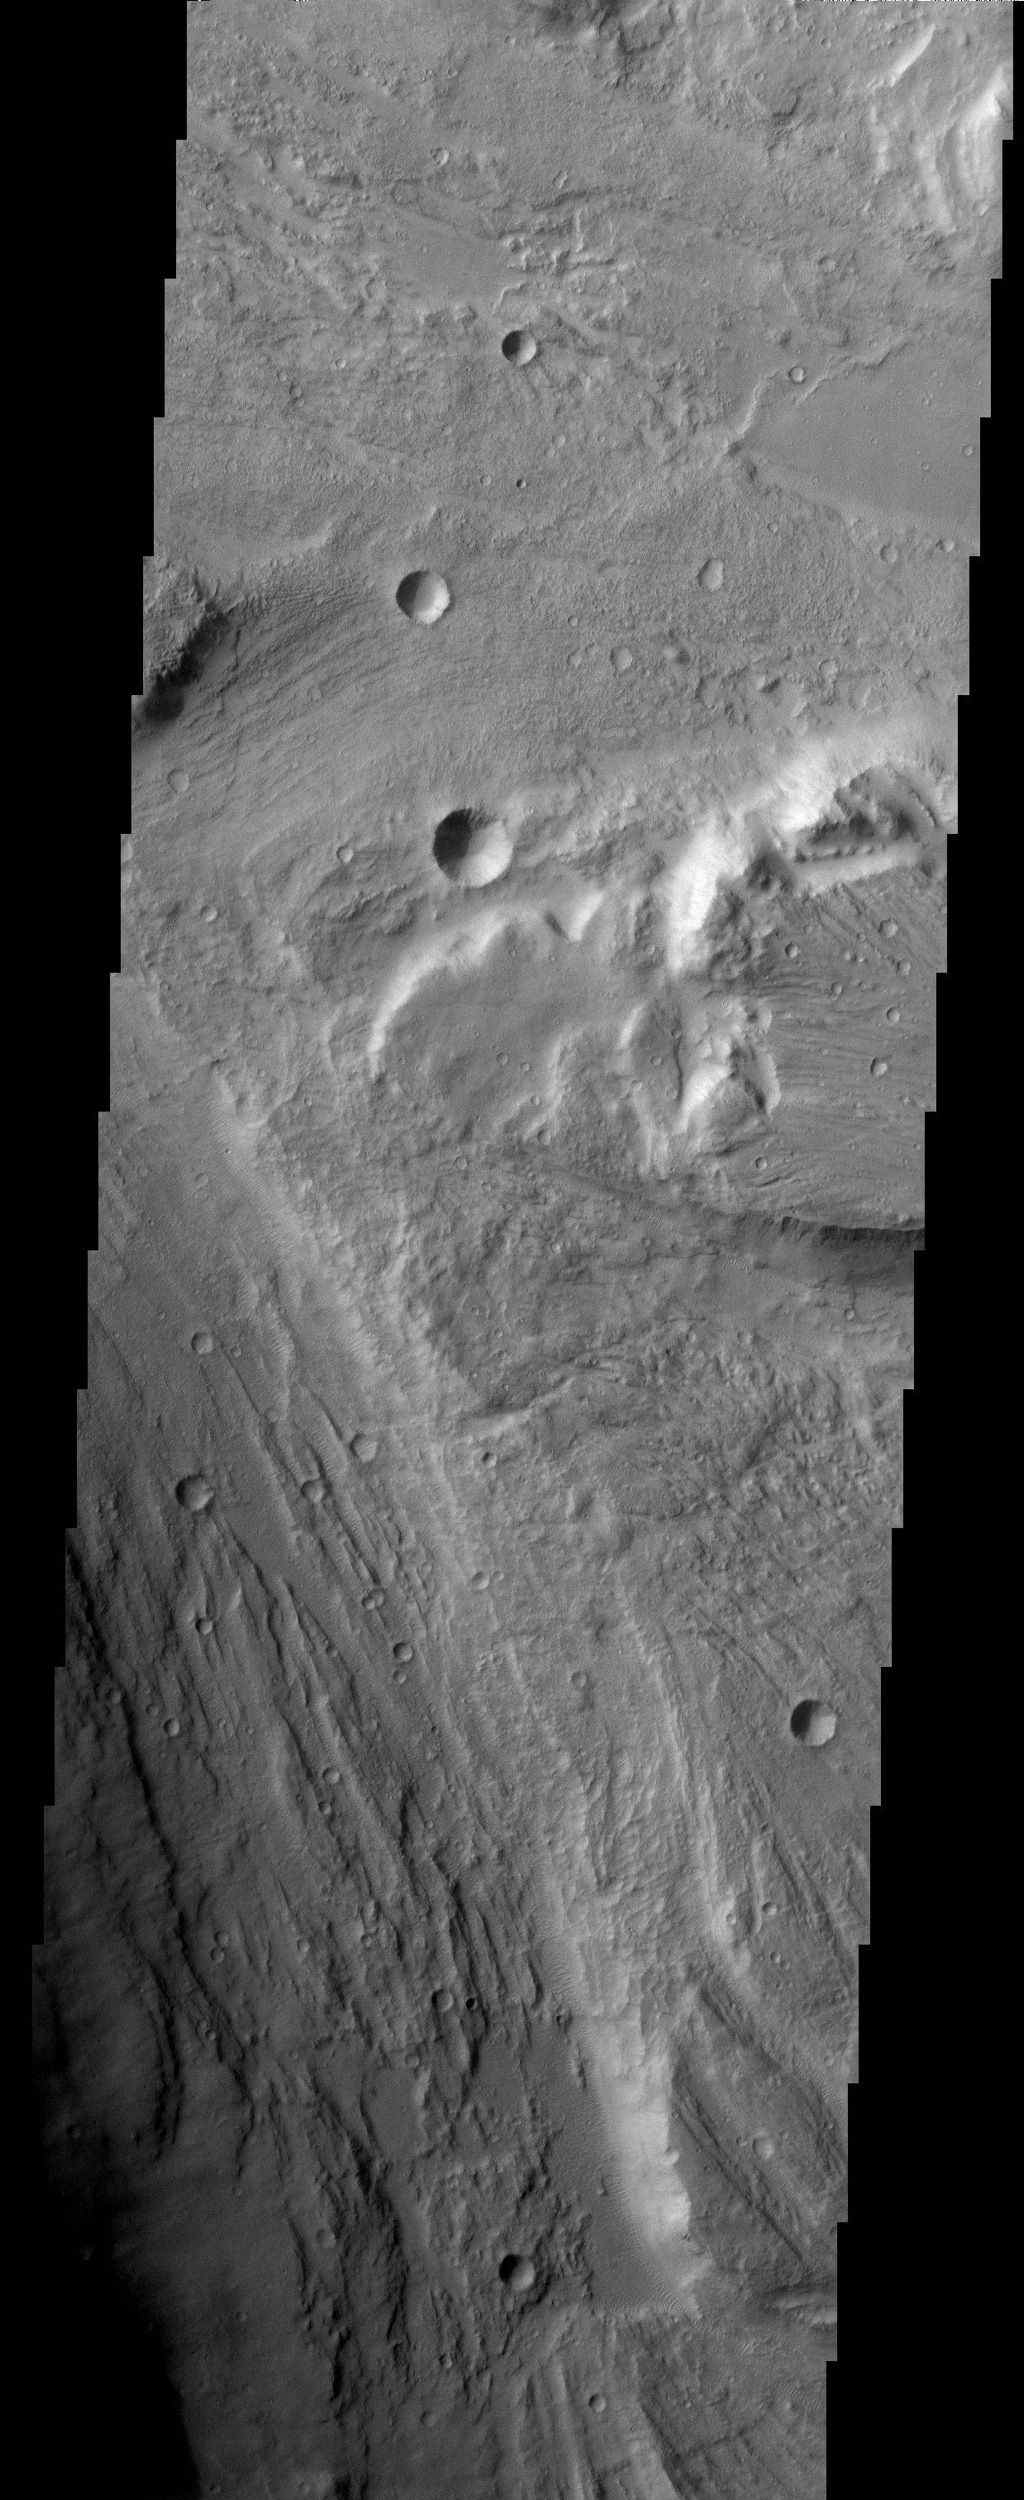 The ancient, catastrophic floods on Mars, whose origins remain a mystery, produced a channeled and scoured landscape like this one, which is called Tiu Valles and was imaged by NASA's Mars Odyssey spacecraft.